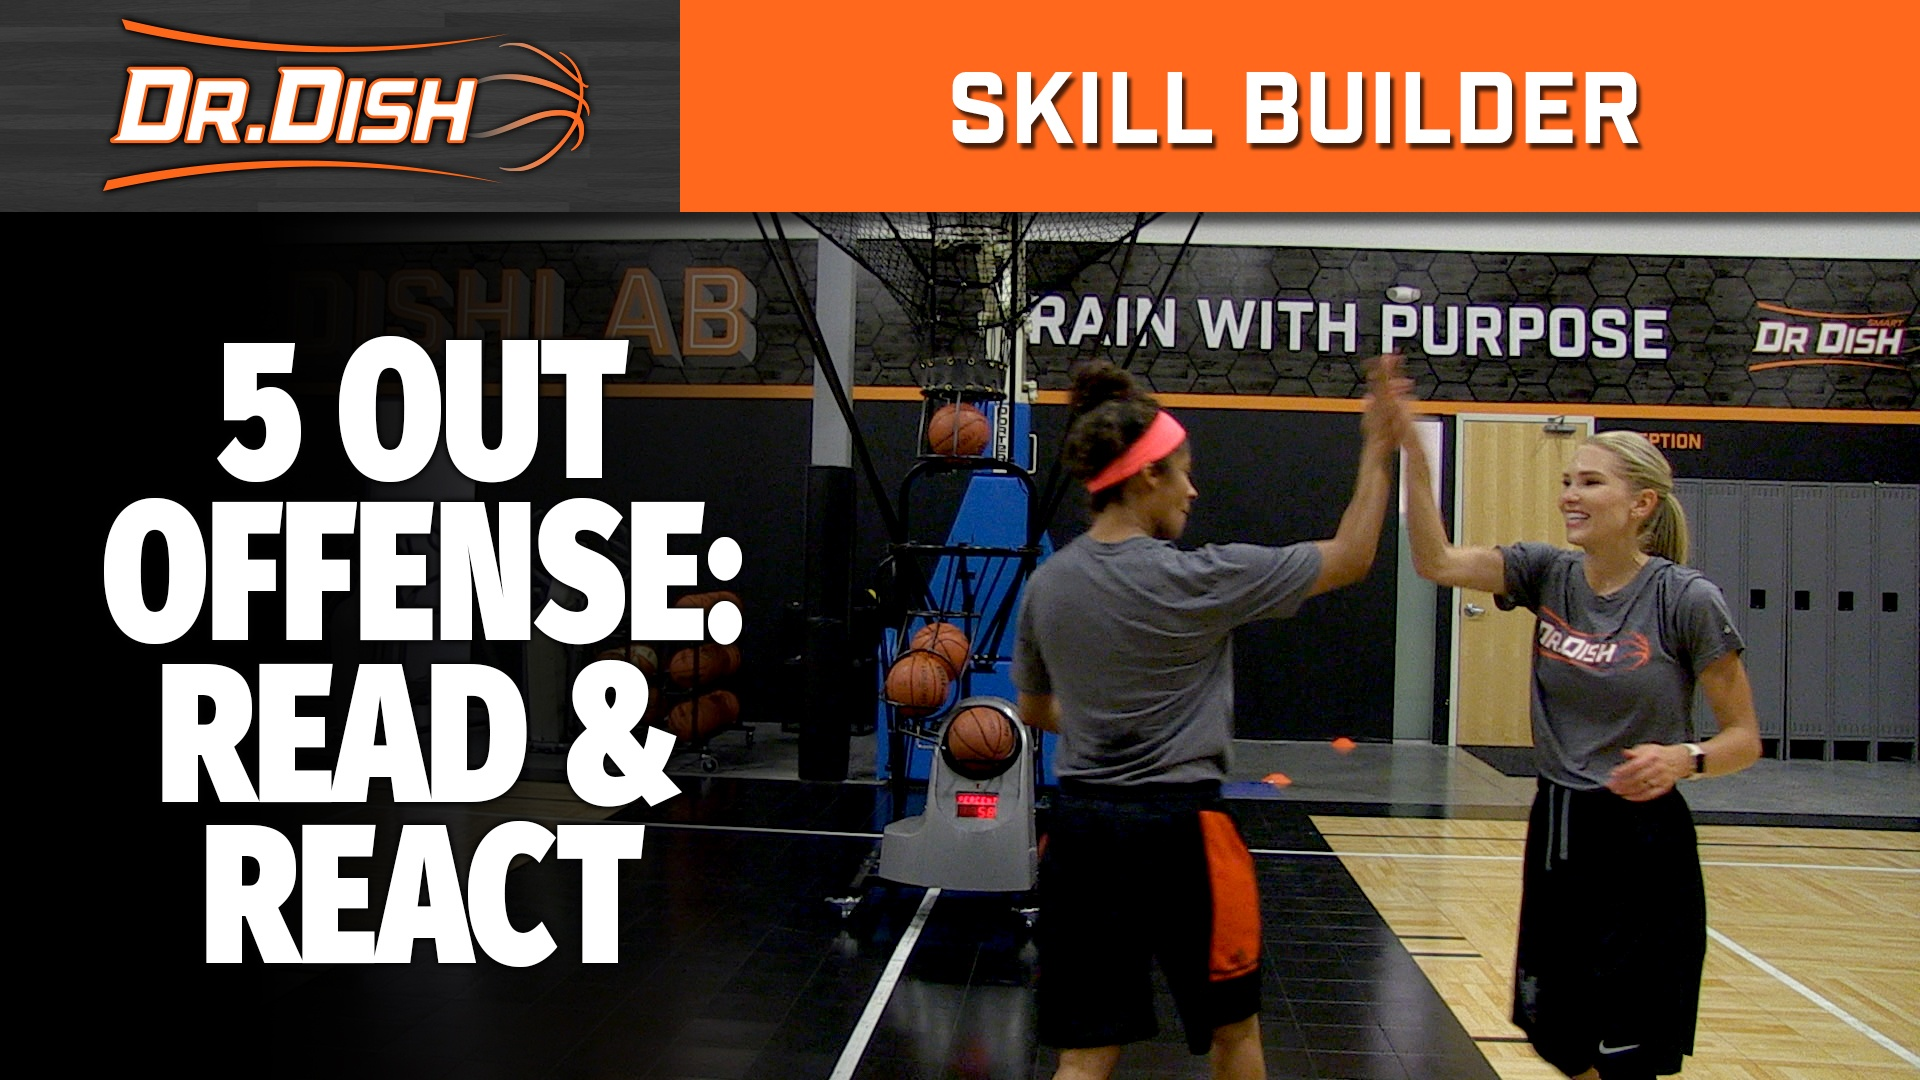 5 Out Offense: Dr. Dish Skill Builder Workout